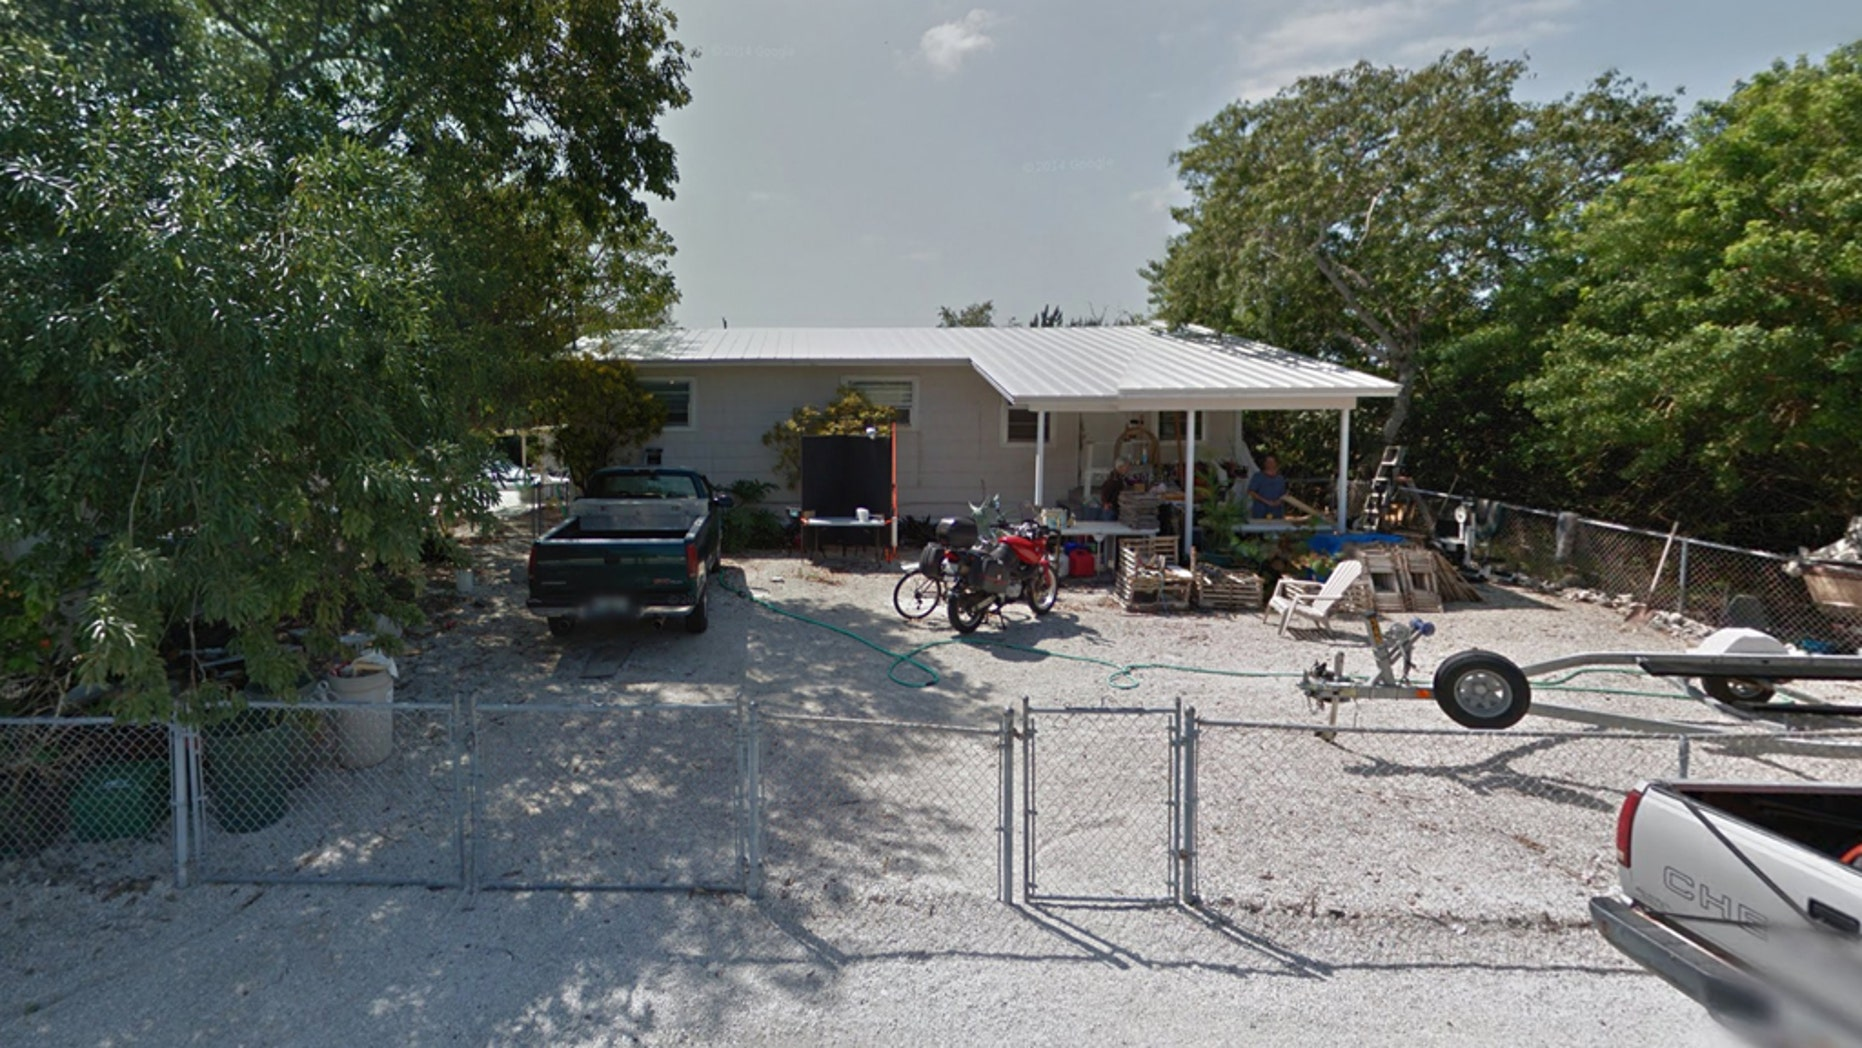 Sheriff's officials say a Florida man was killed when the car he was working on fell on top of him. (Google Street View)